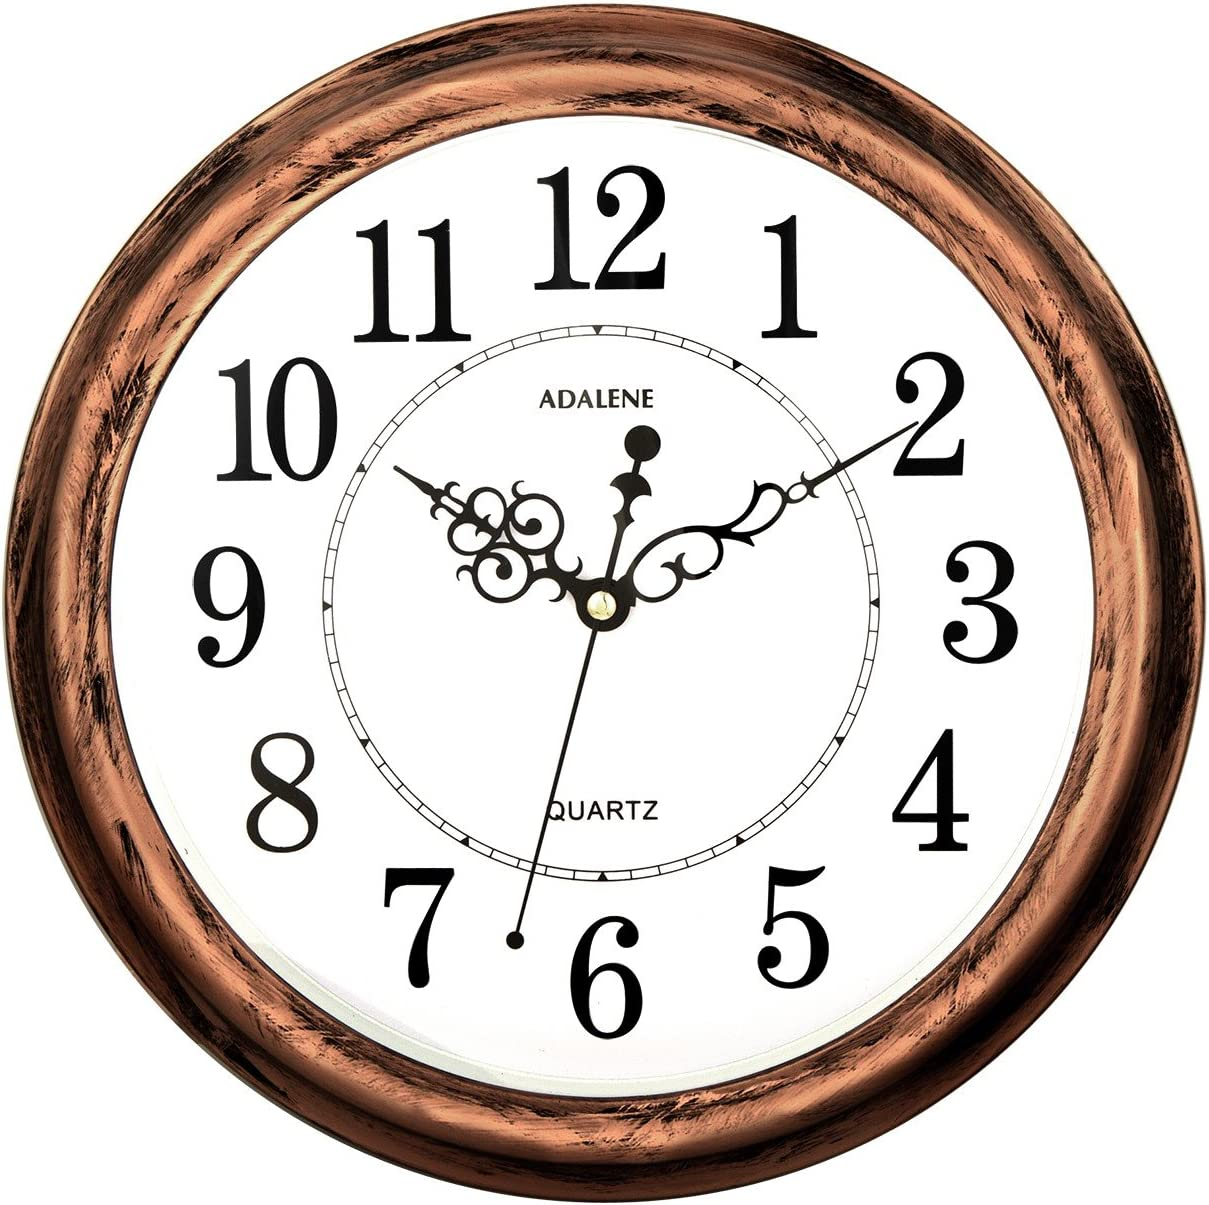 Adalene 13-Inch Decorative Wall Clock Silent Non-Ticking - Vintage Retro Kitchen Wall Clock, Bathroom - Large Wall Clocks for Living Room Décor - Rustic Wall Clocks Battery Operated Silent Wall Clock